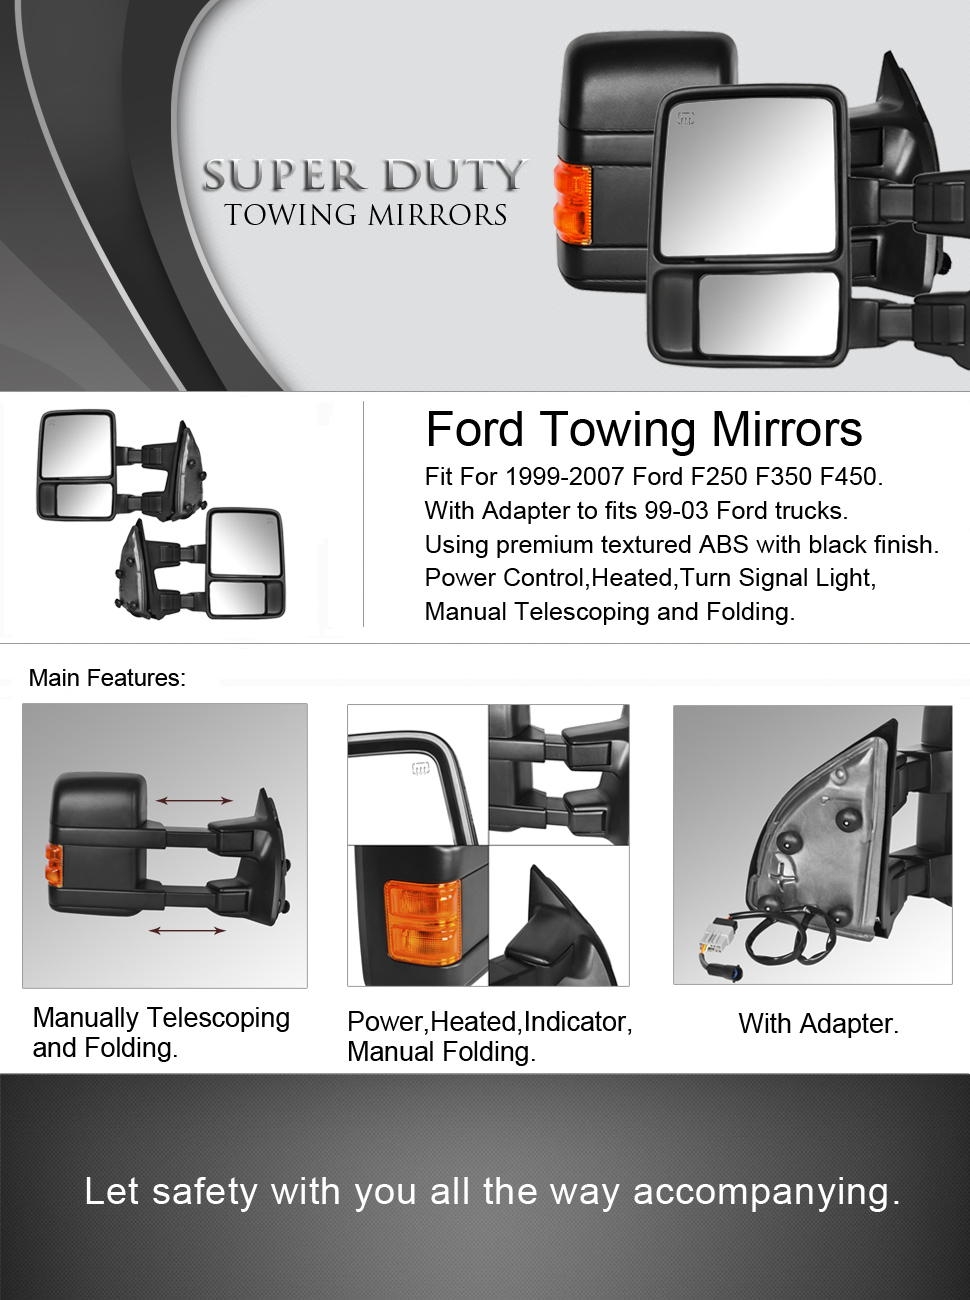 3e4EMyExQyWq._UX970_TTW_ amazon com dedc ford towing mirrors f250 ford tow mirrors f350  at crackthecode.co